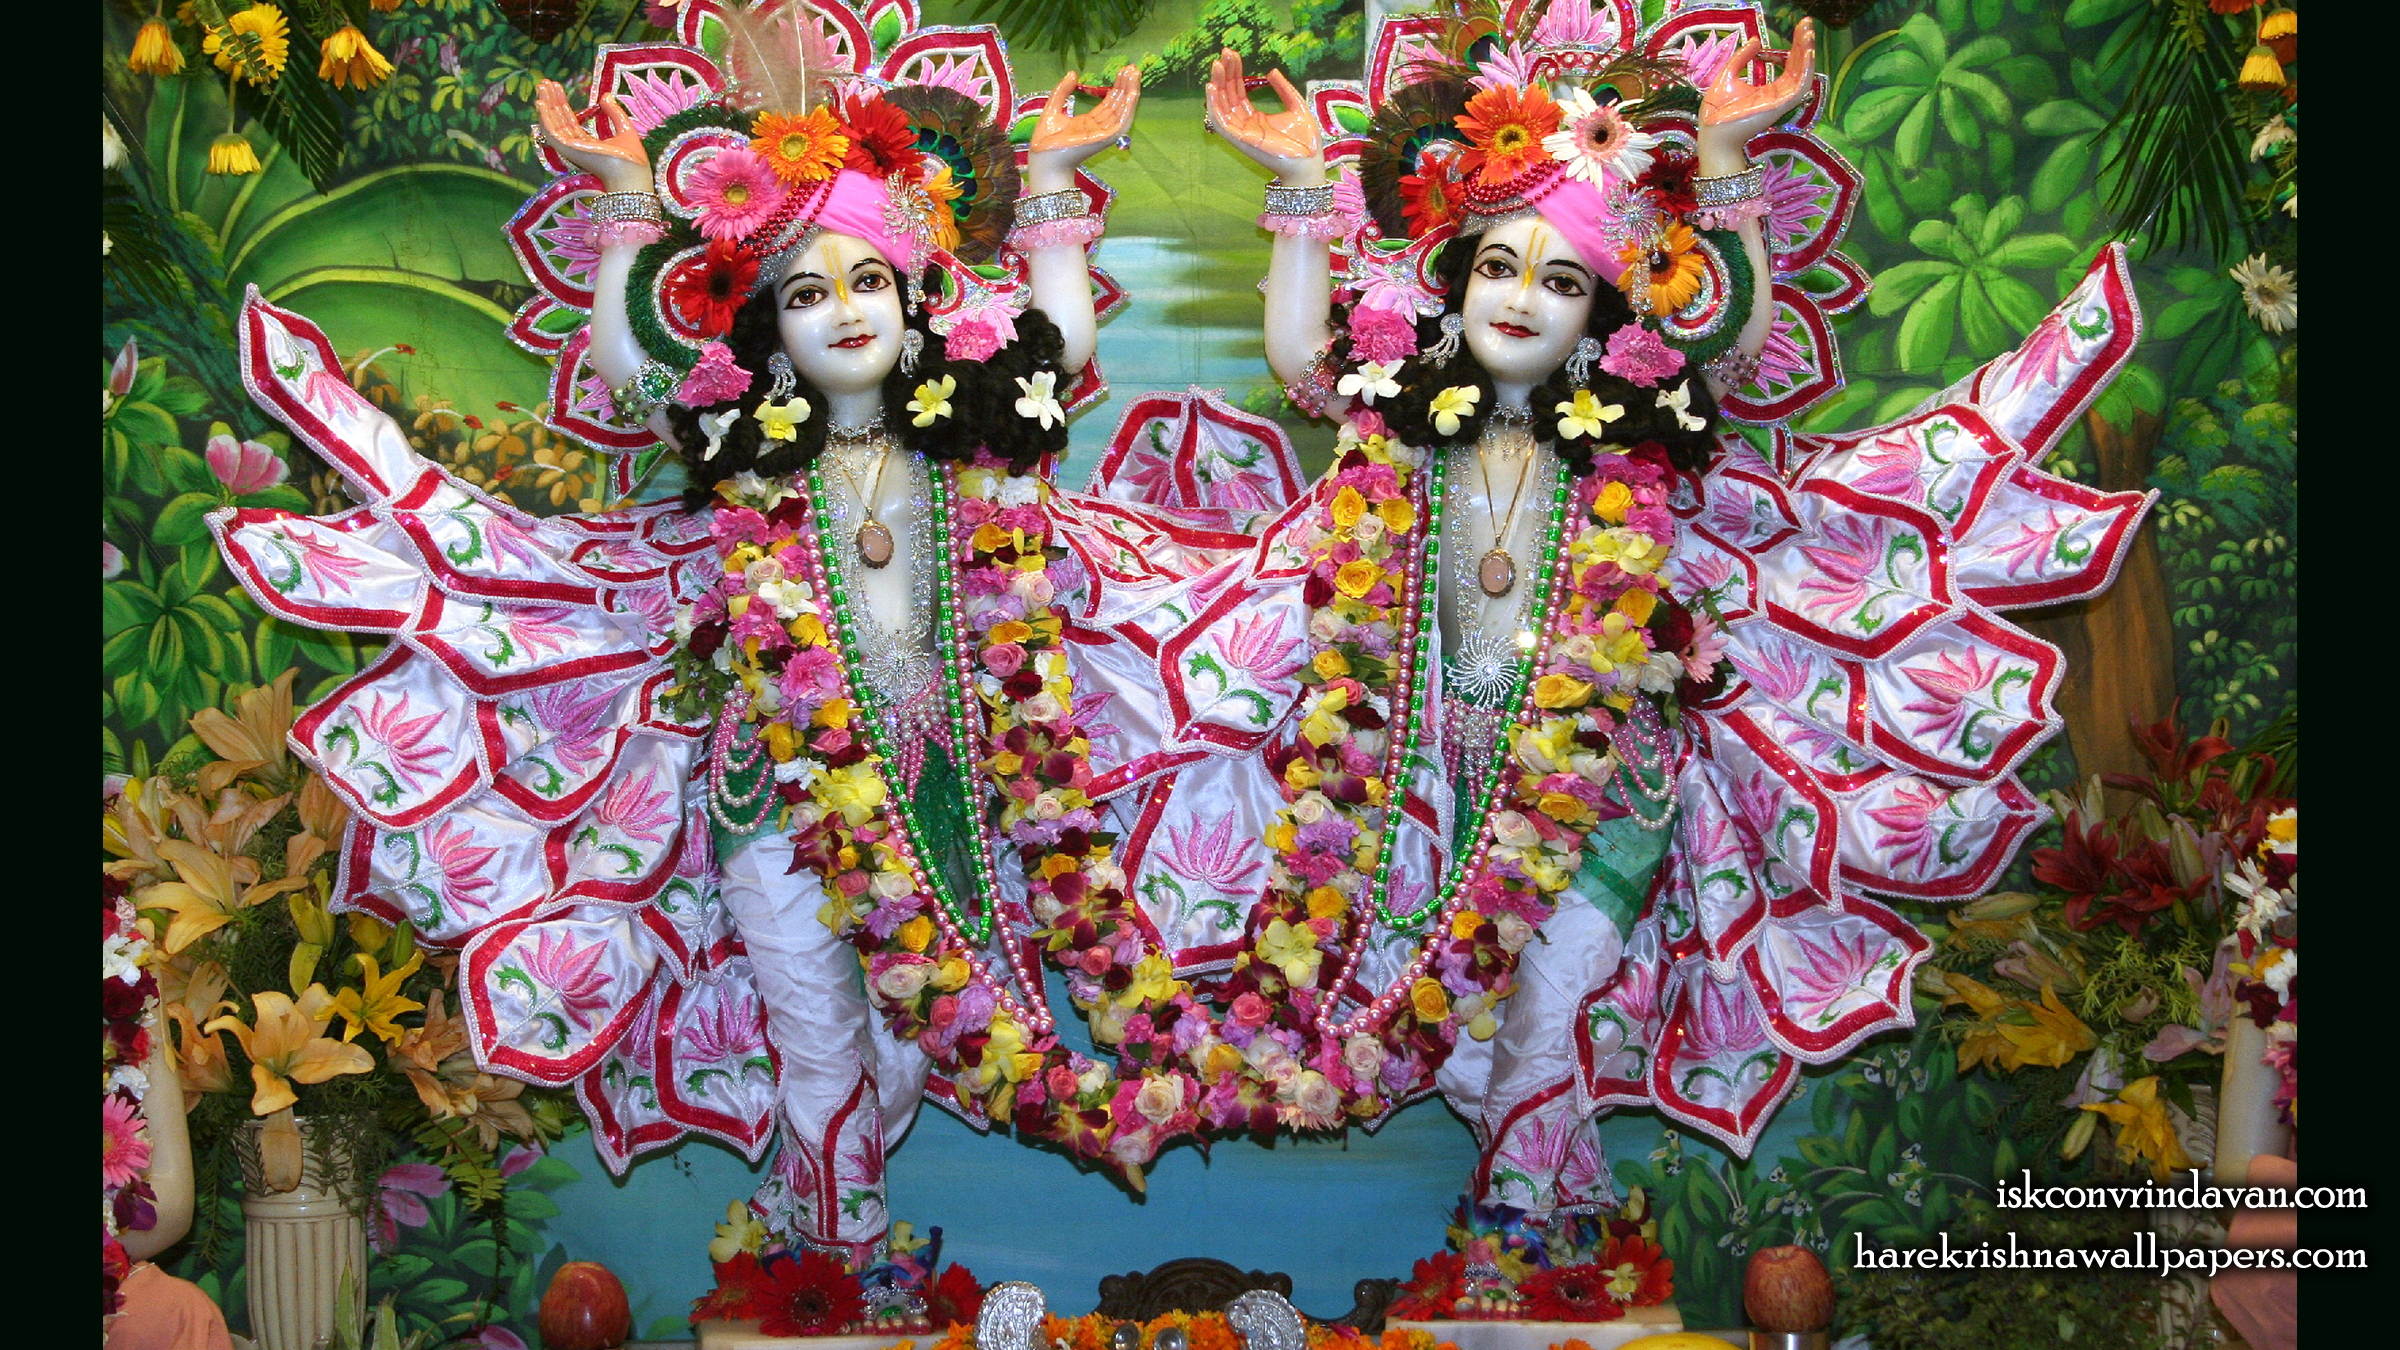 Sri Sri Gaura Nitai Wallpaper (085) Size 2400x1350 Download